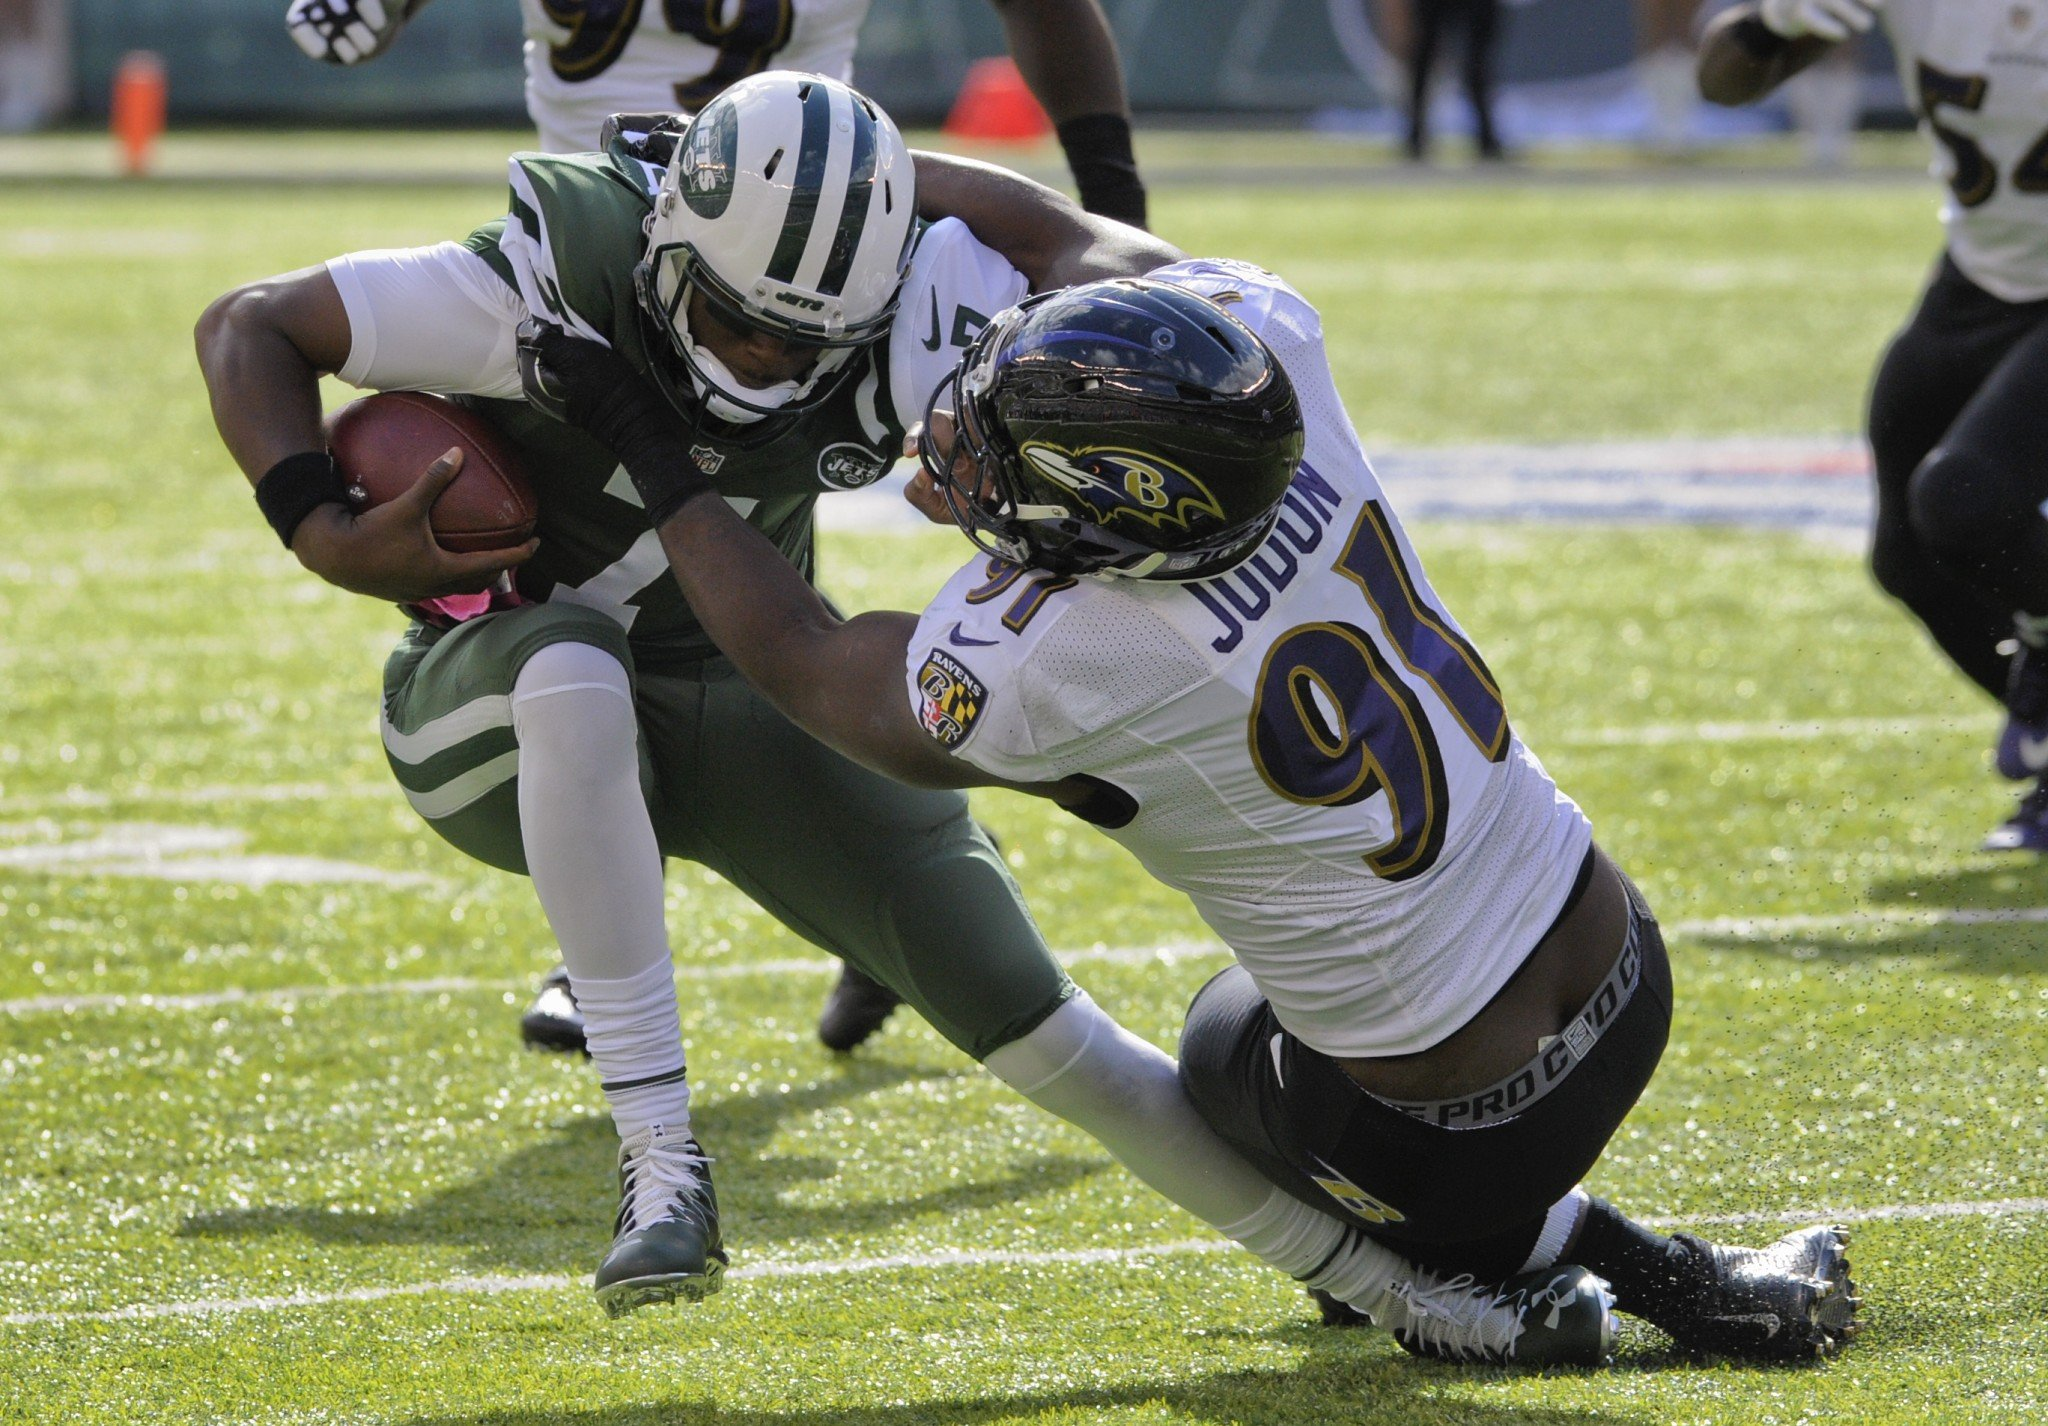 NFL Jets quarterback Smith facing season KO